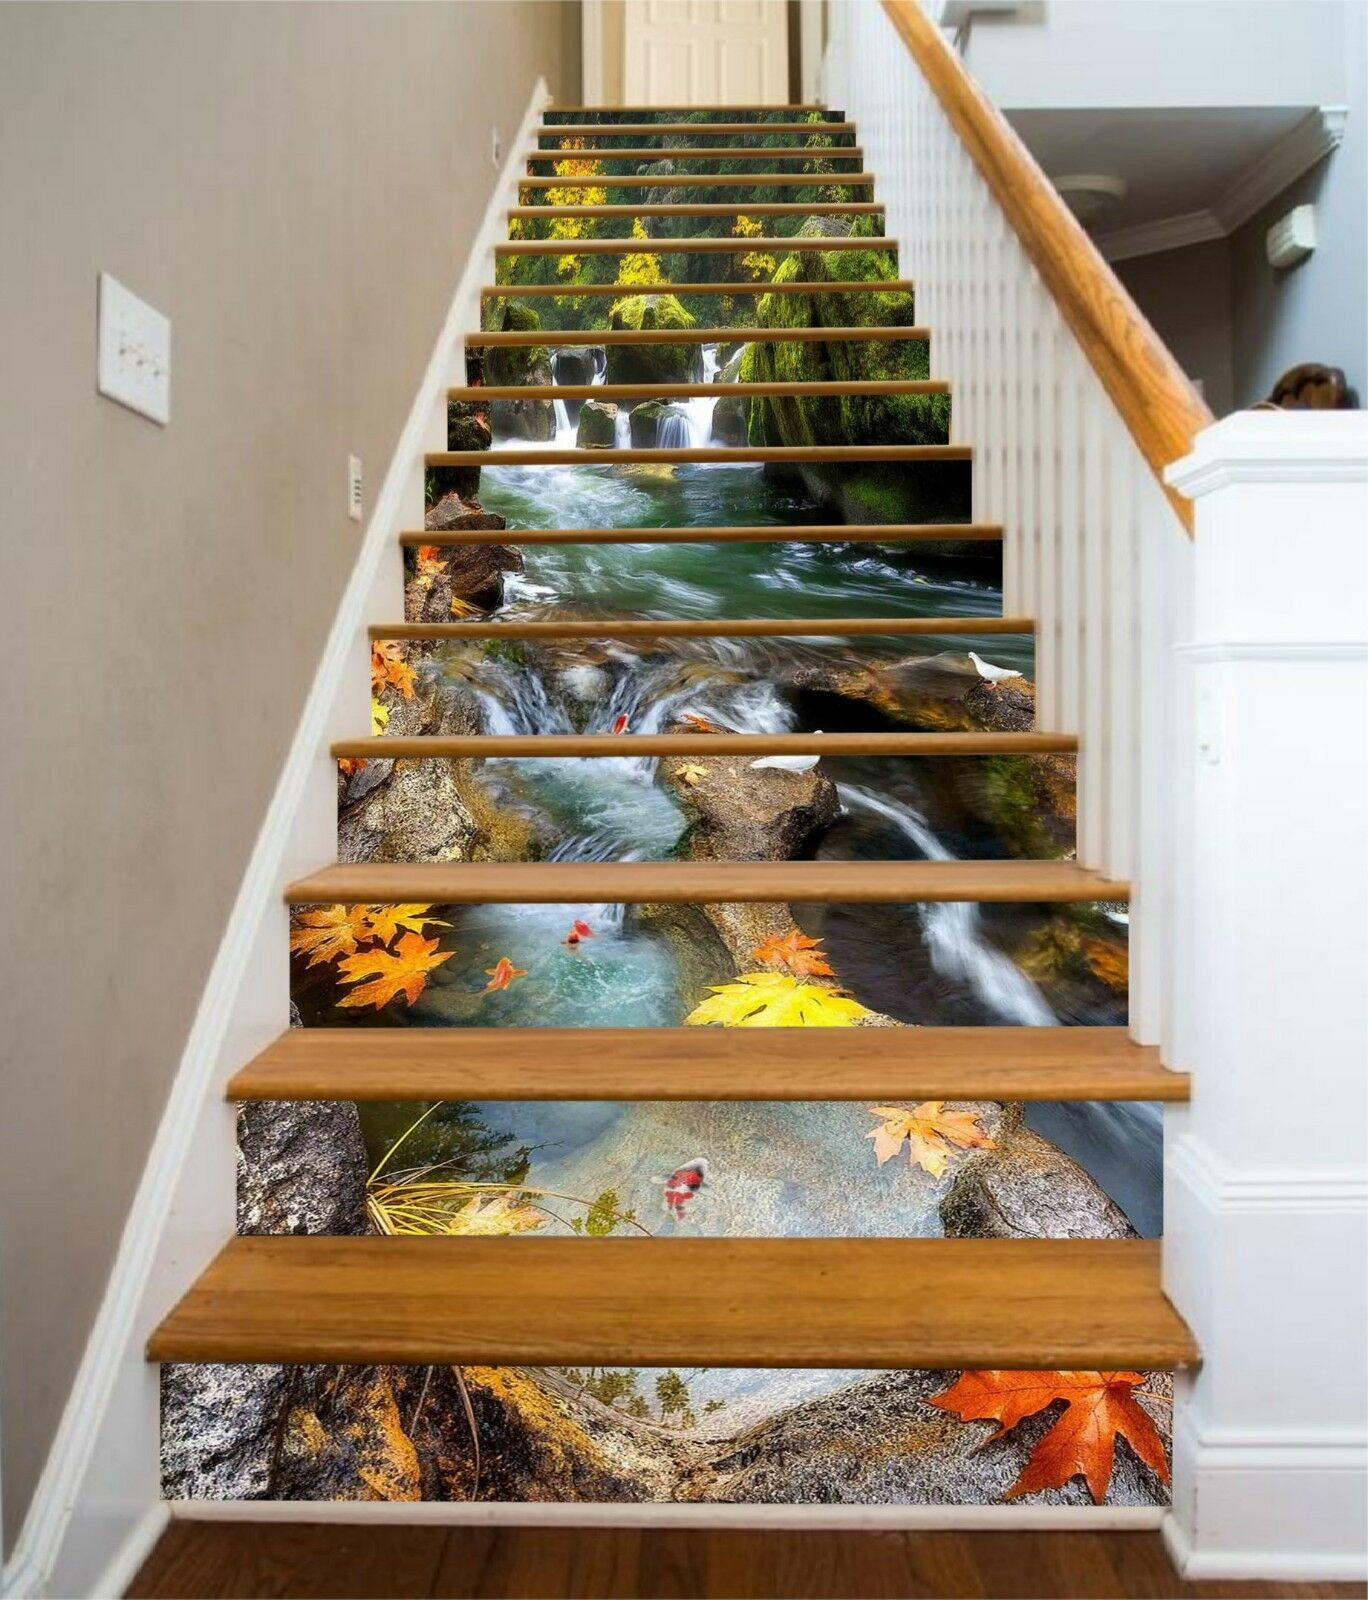 3D Rivulet Leaf 3 Stair Risers Decoration Photo Mural Vinyl Decal Wallpaper UK